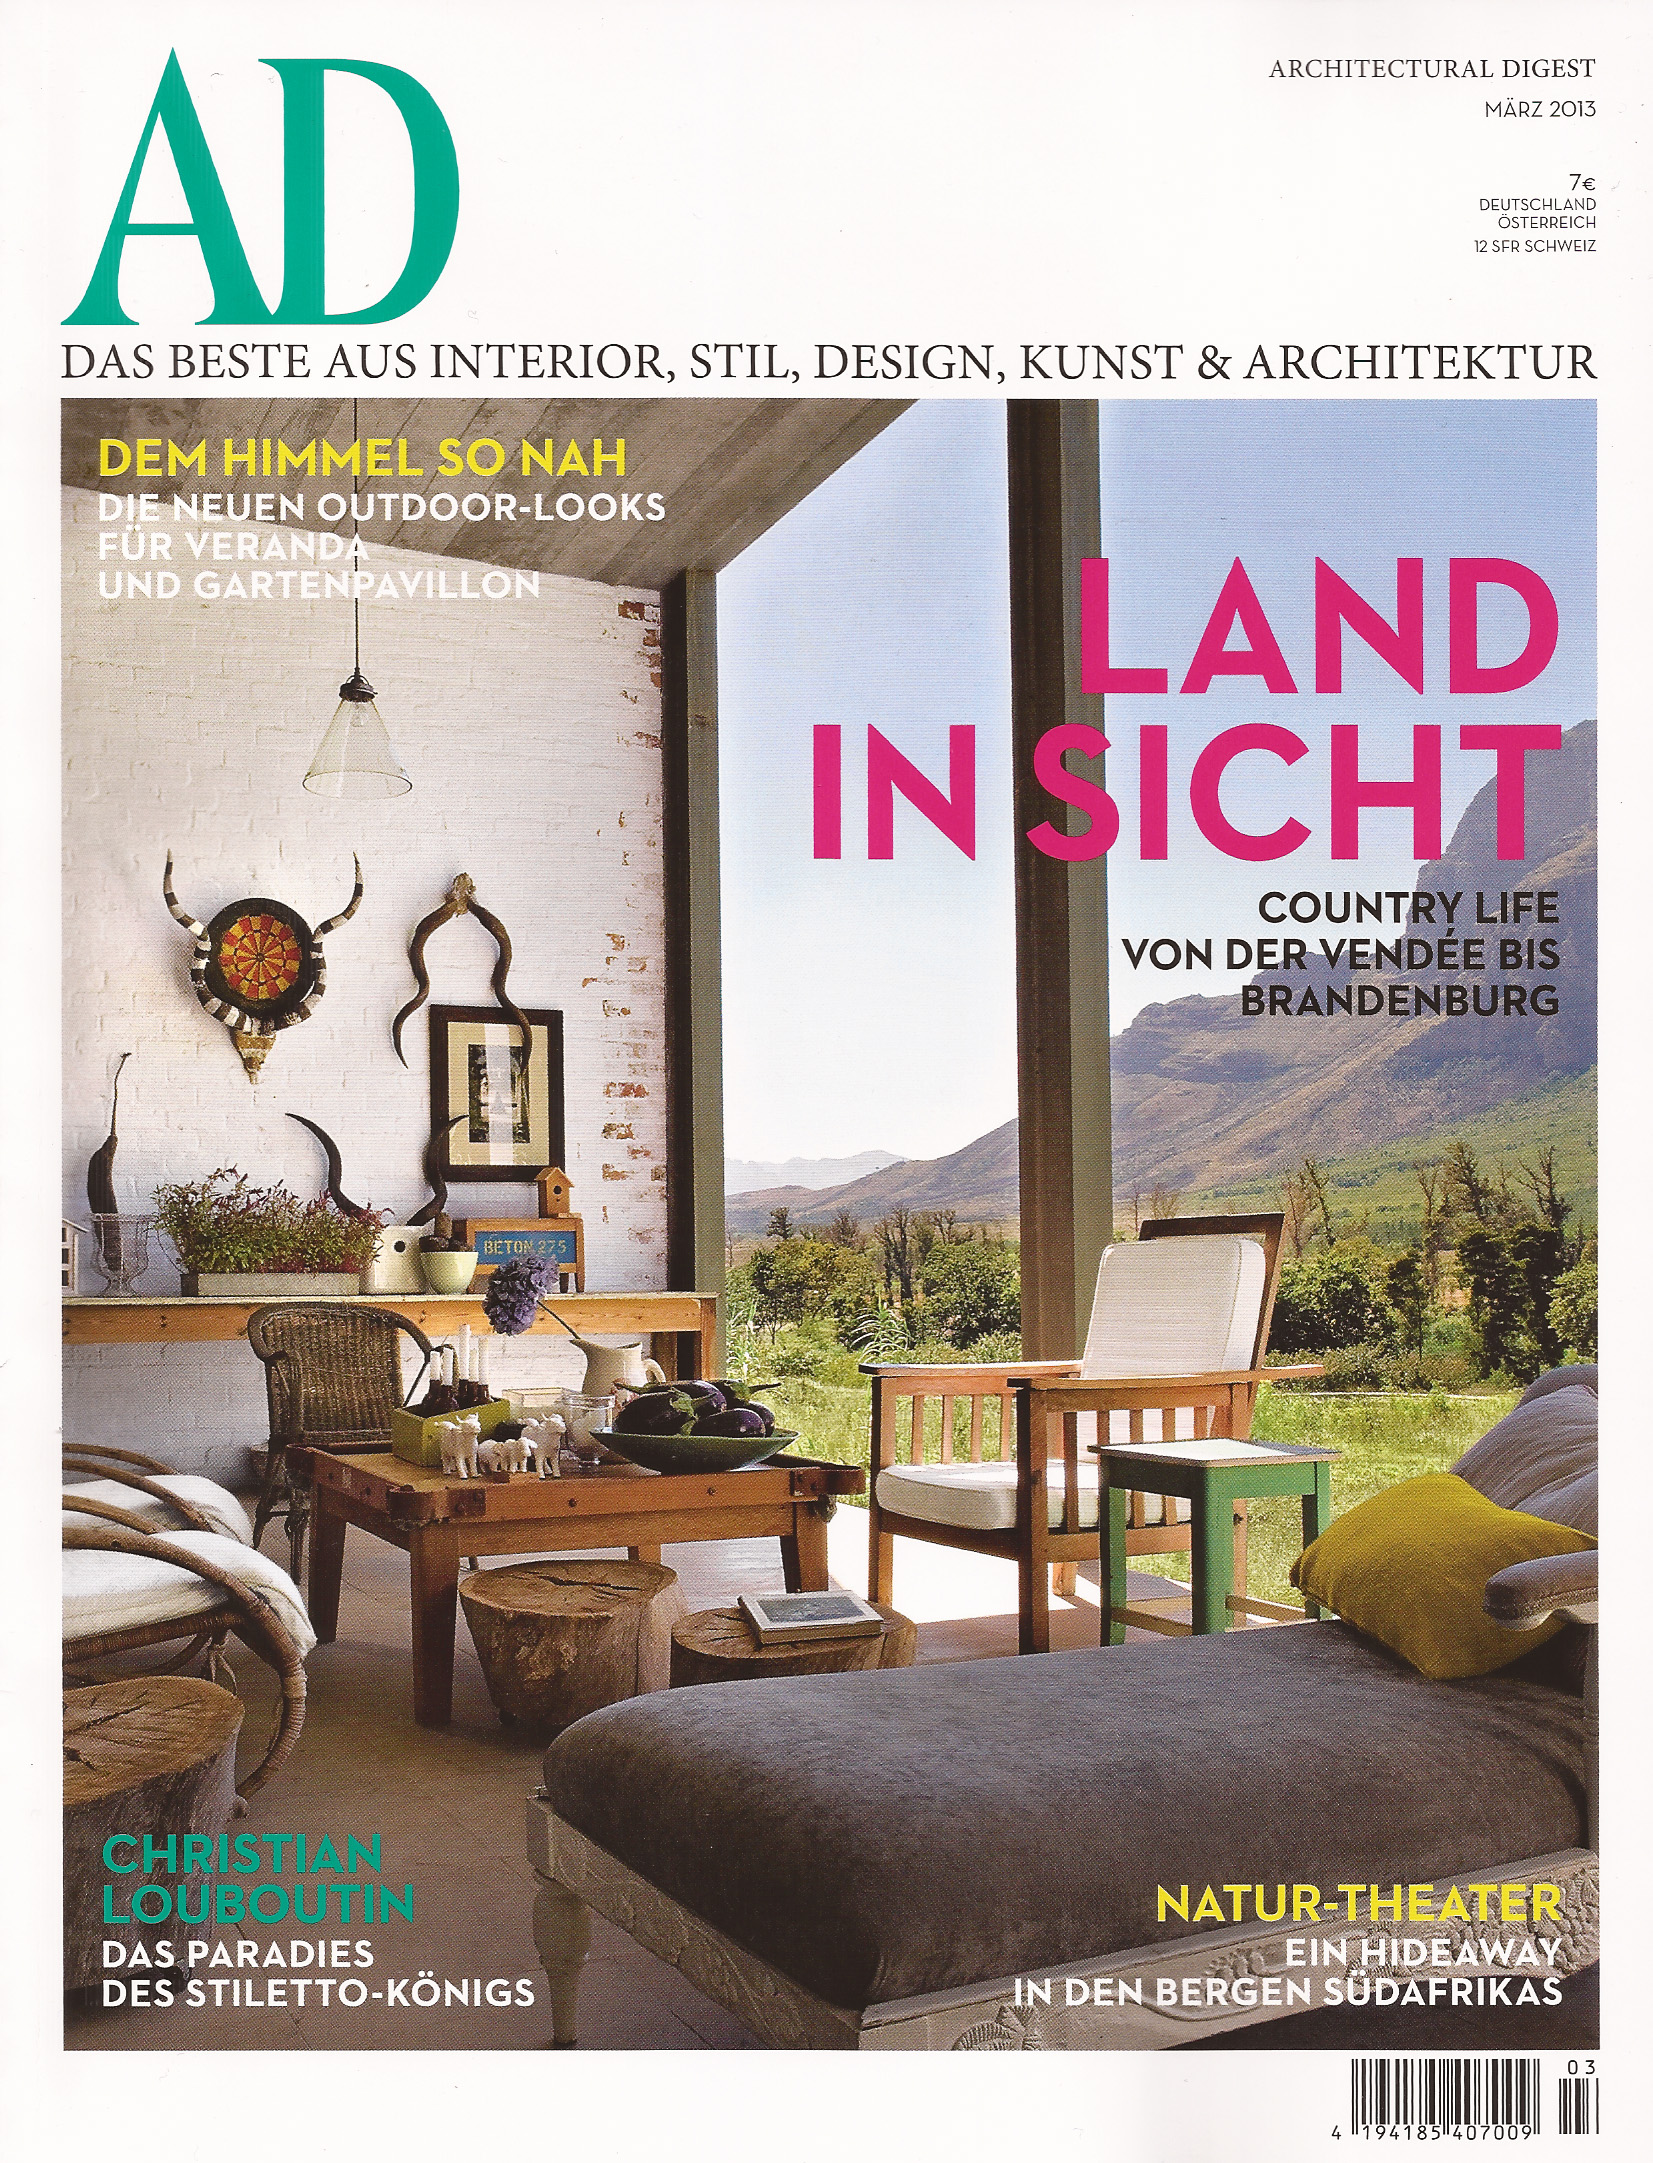 ADGermany_March2013_Cover.jpg